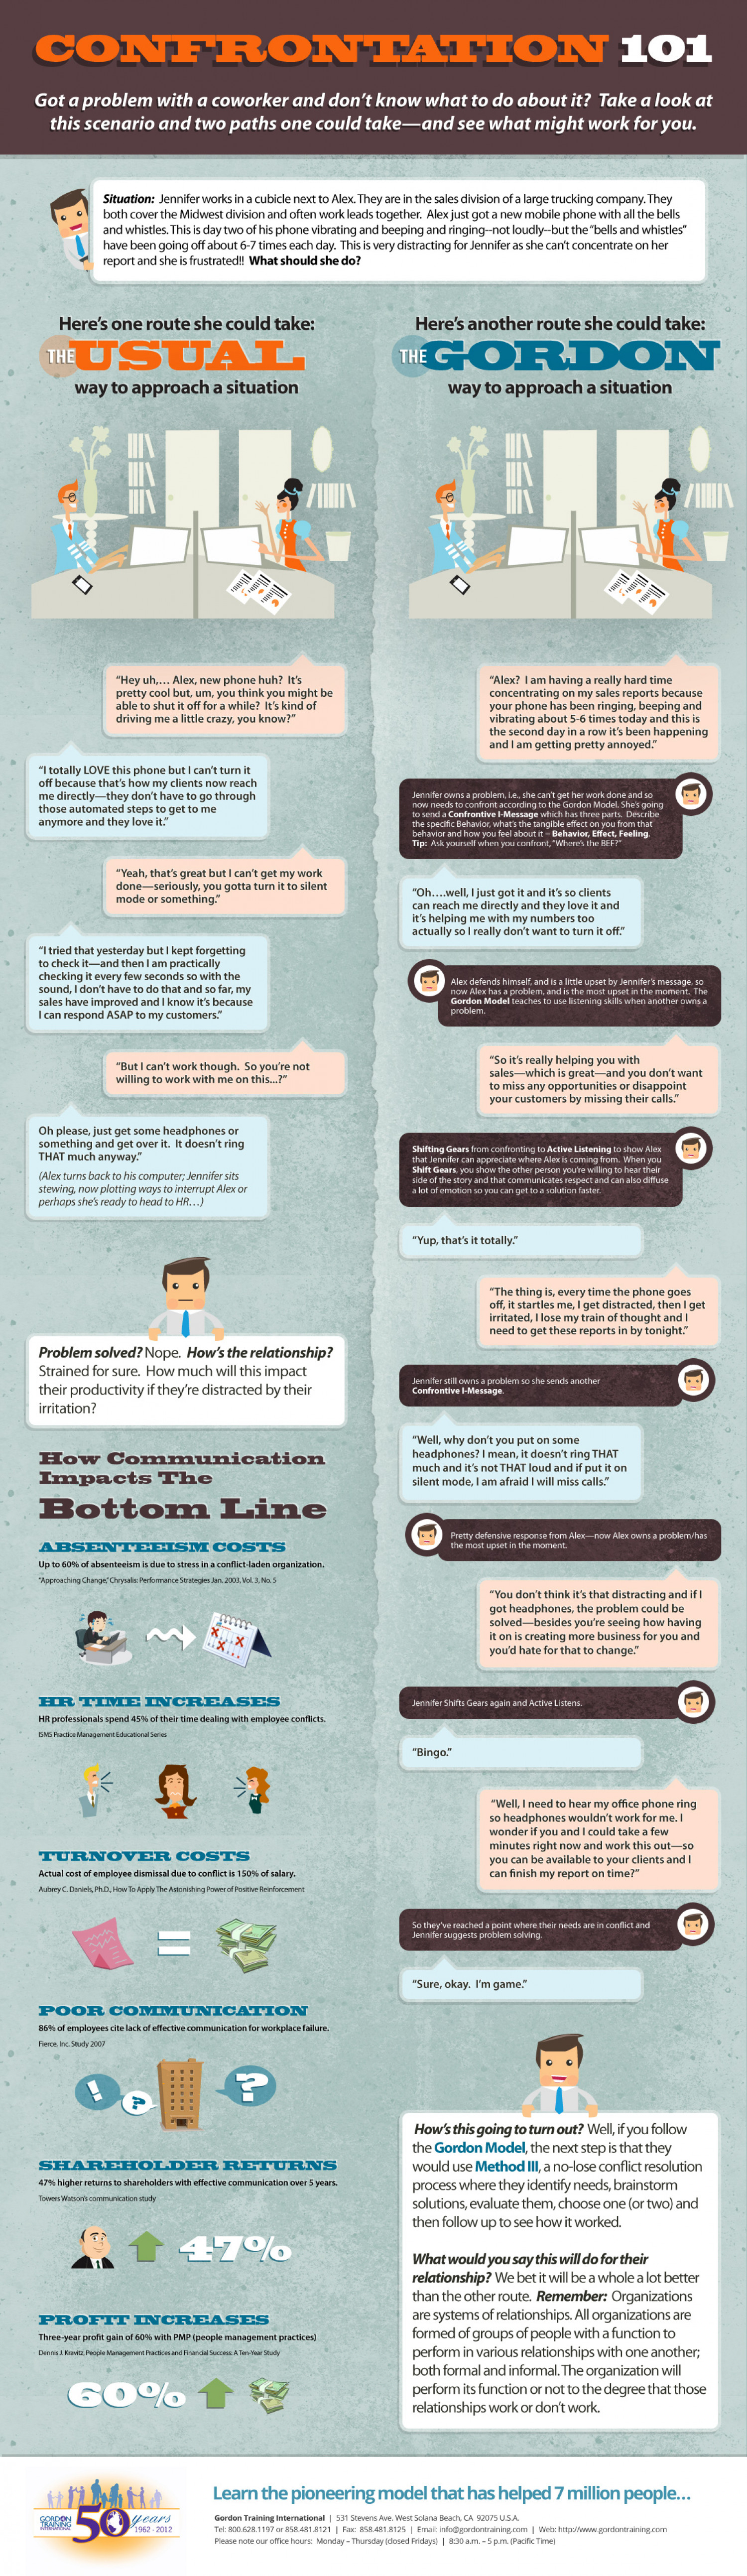 Confrontation 101 Infographic